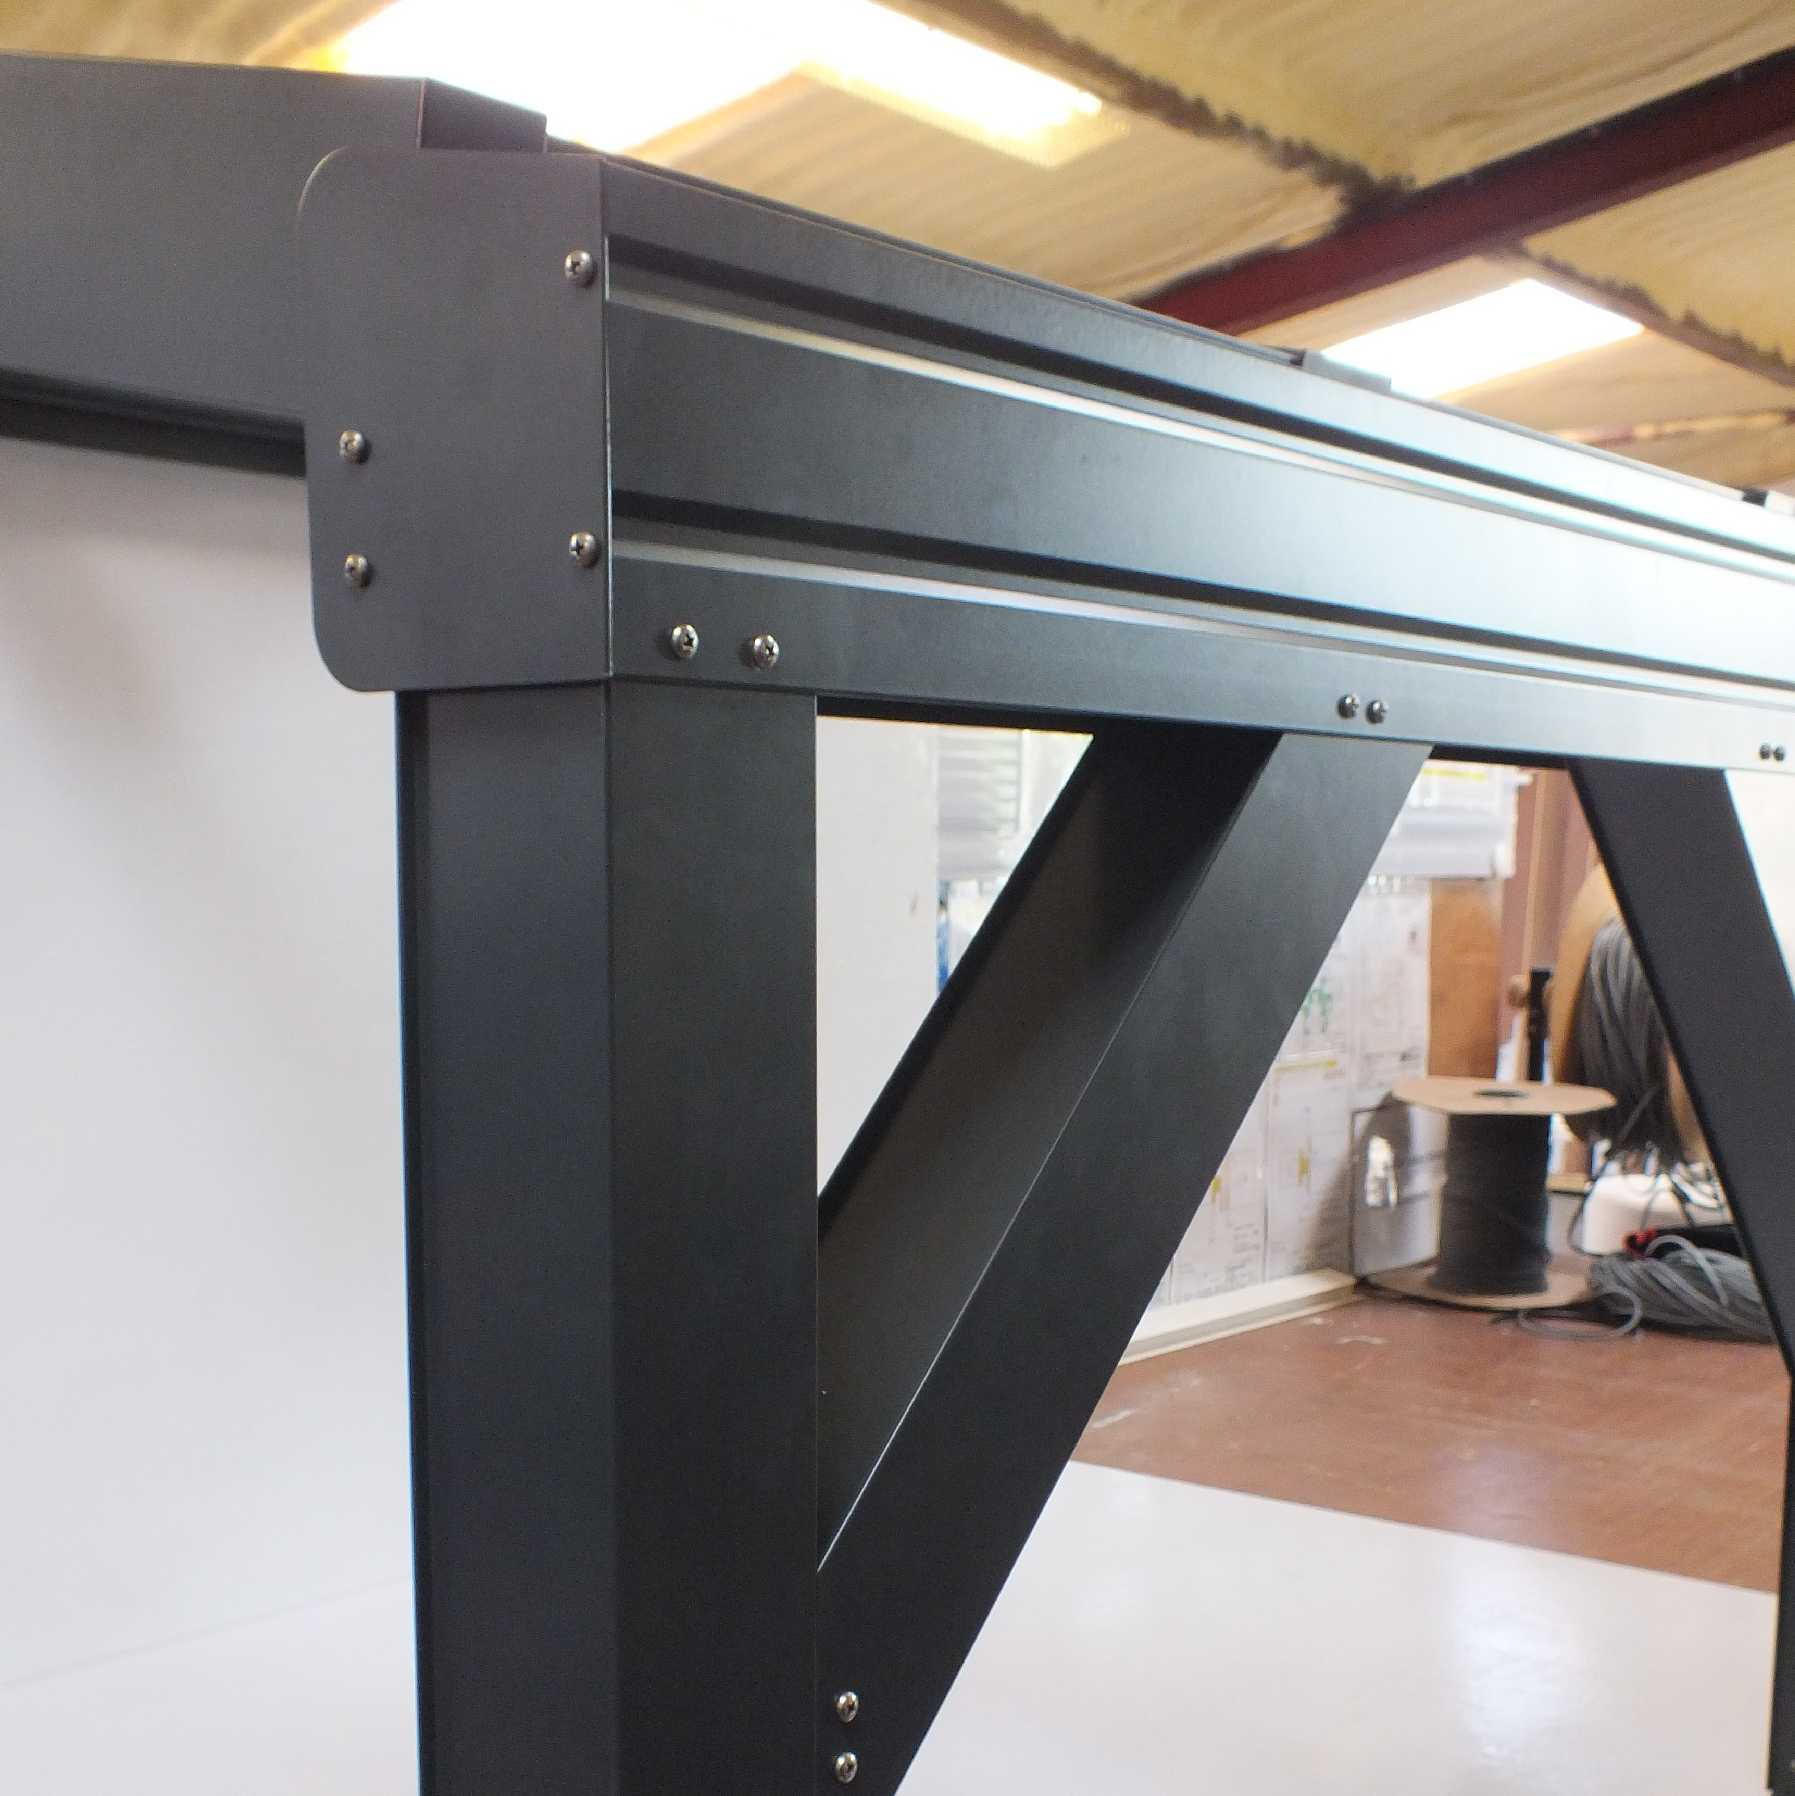 Omega Smart Lean-To Canopy, Anthracite Grey, UNGLAZED for 6mm Glazing - 2.8m (W) x 2.5m (P), (2) Supporting Posts from Omega Build